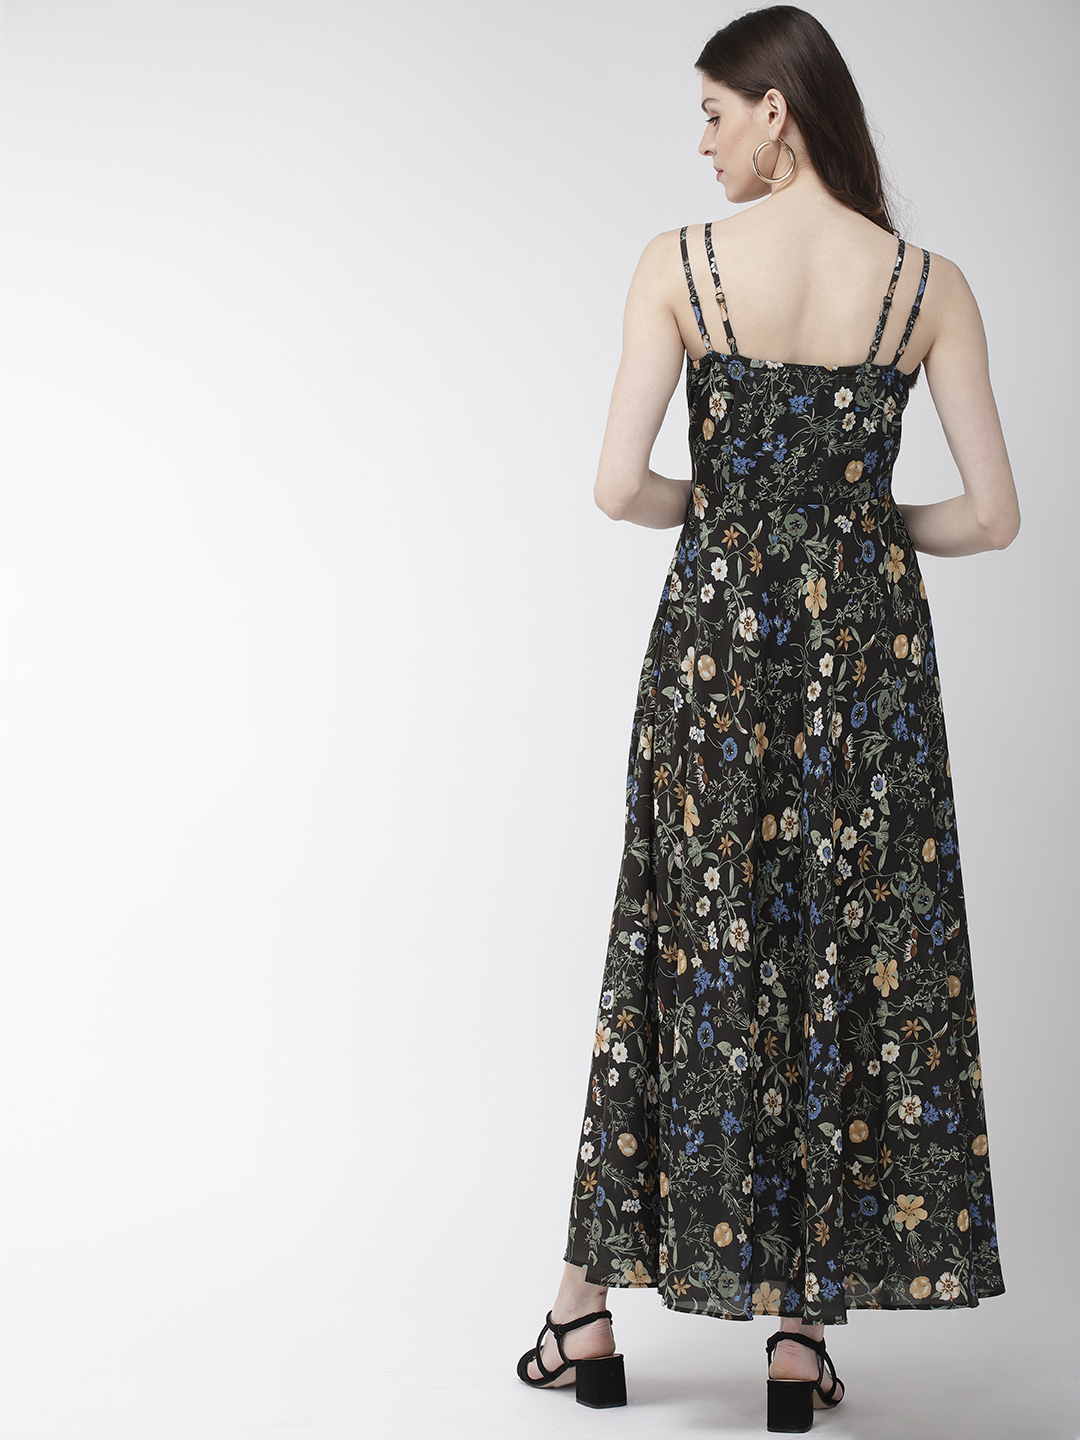 Dresses-Gardens Of Bloom Maxi Dress3